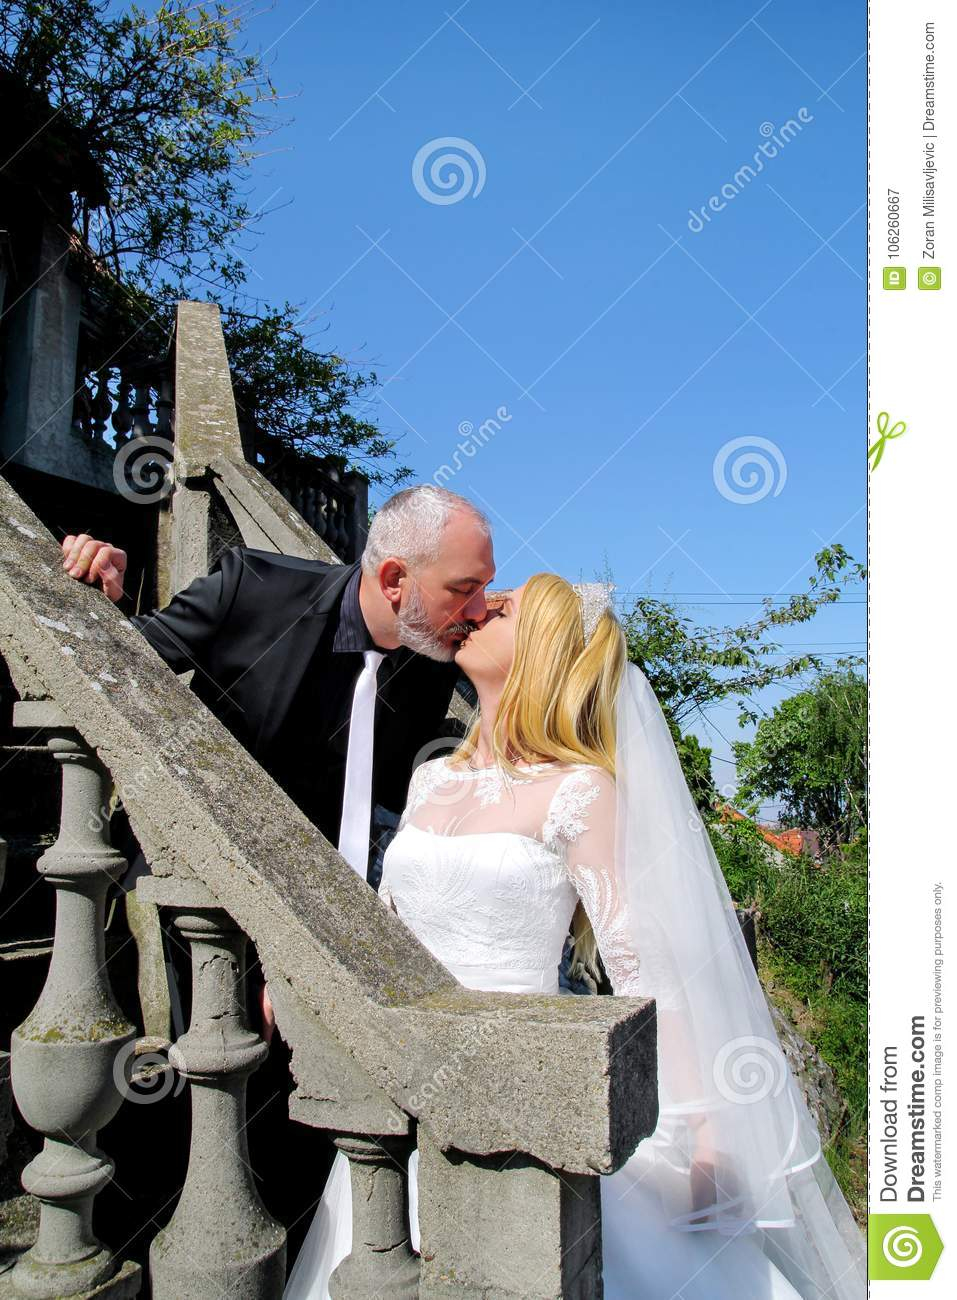 The happy handsome wedding couple are standing and kissing on stone steps in front of house.